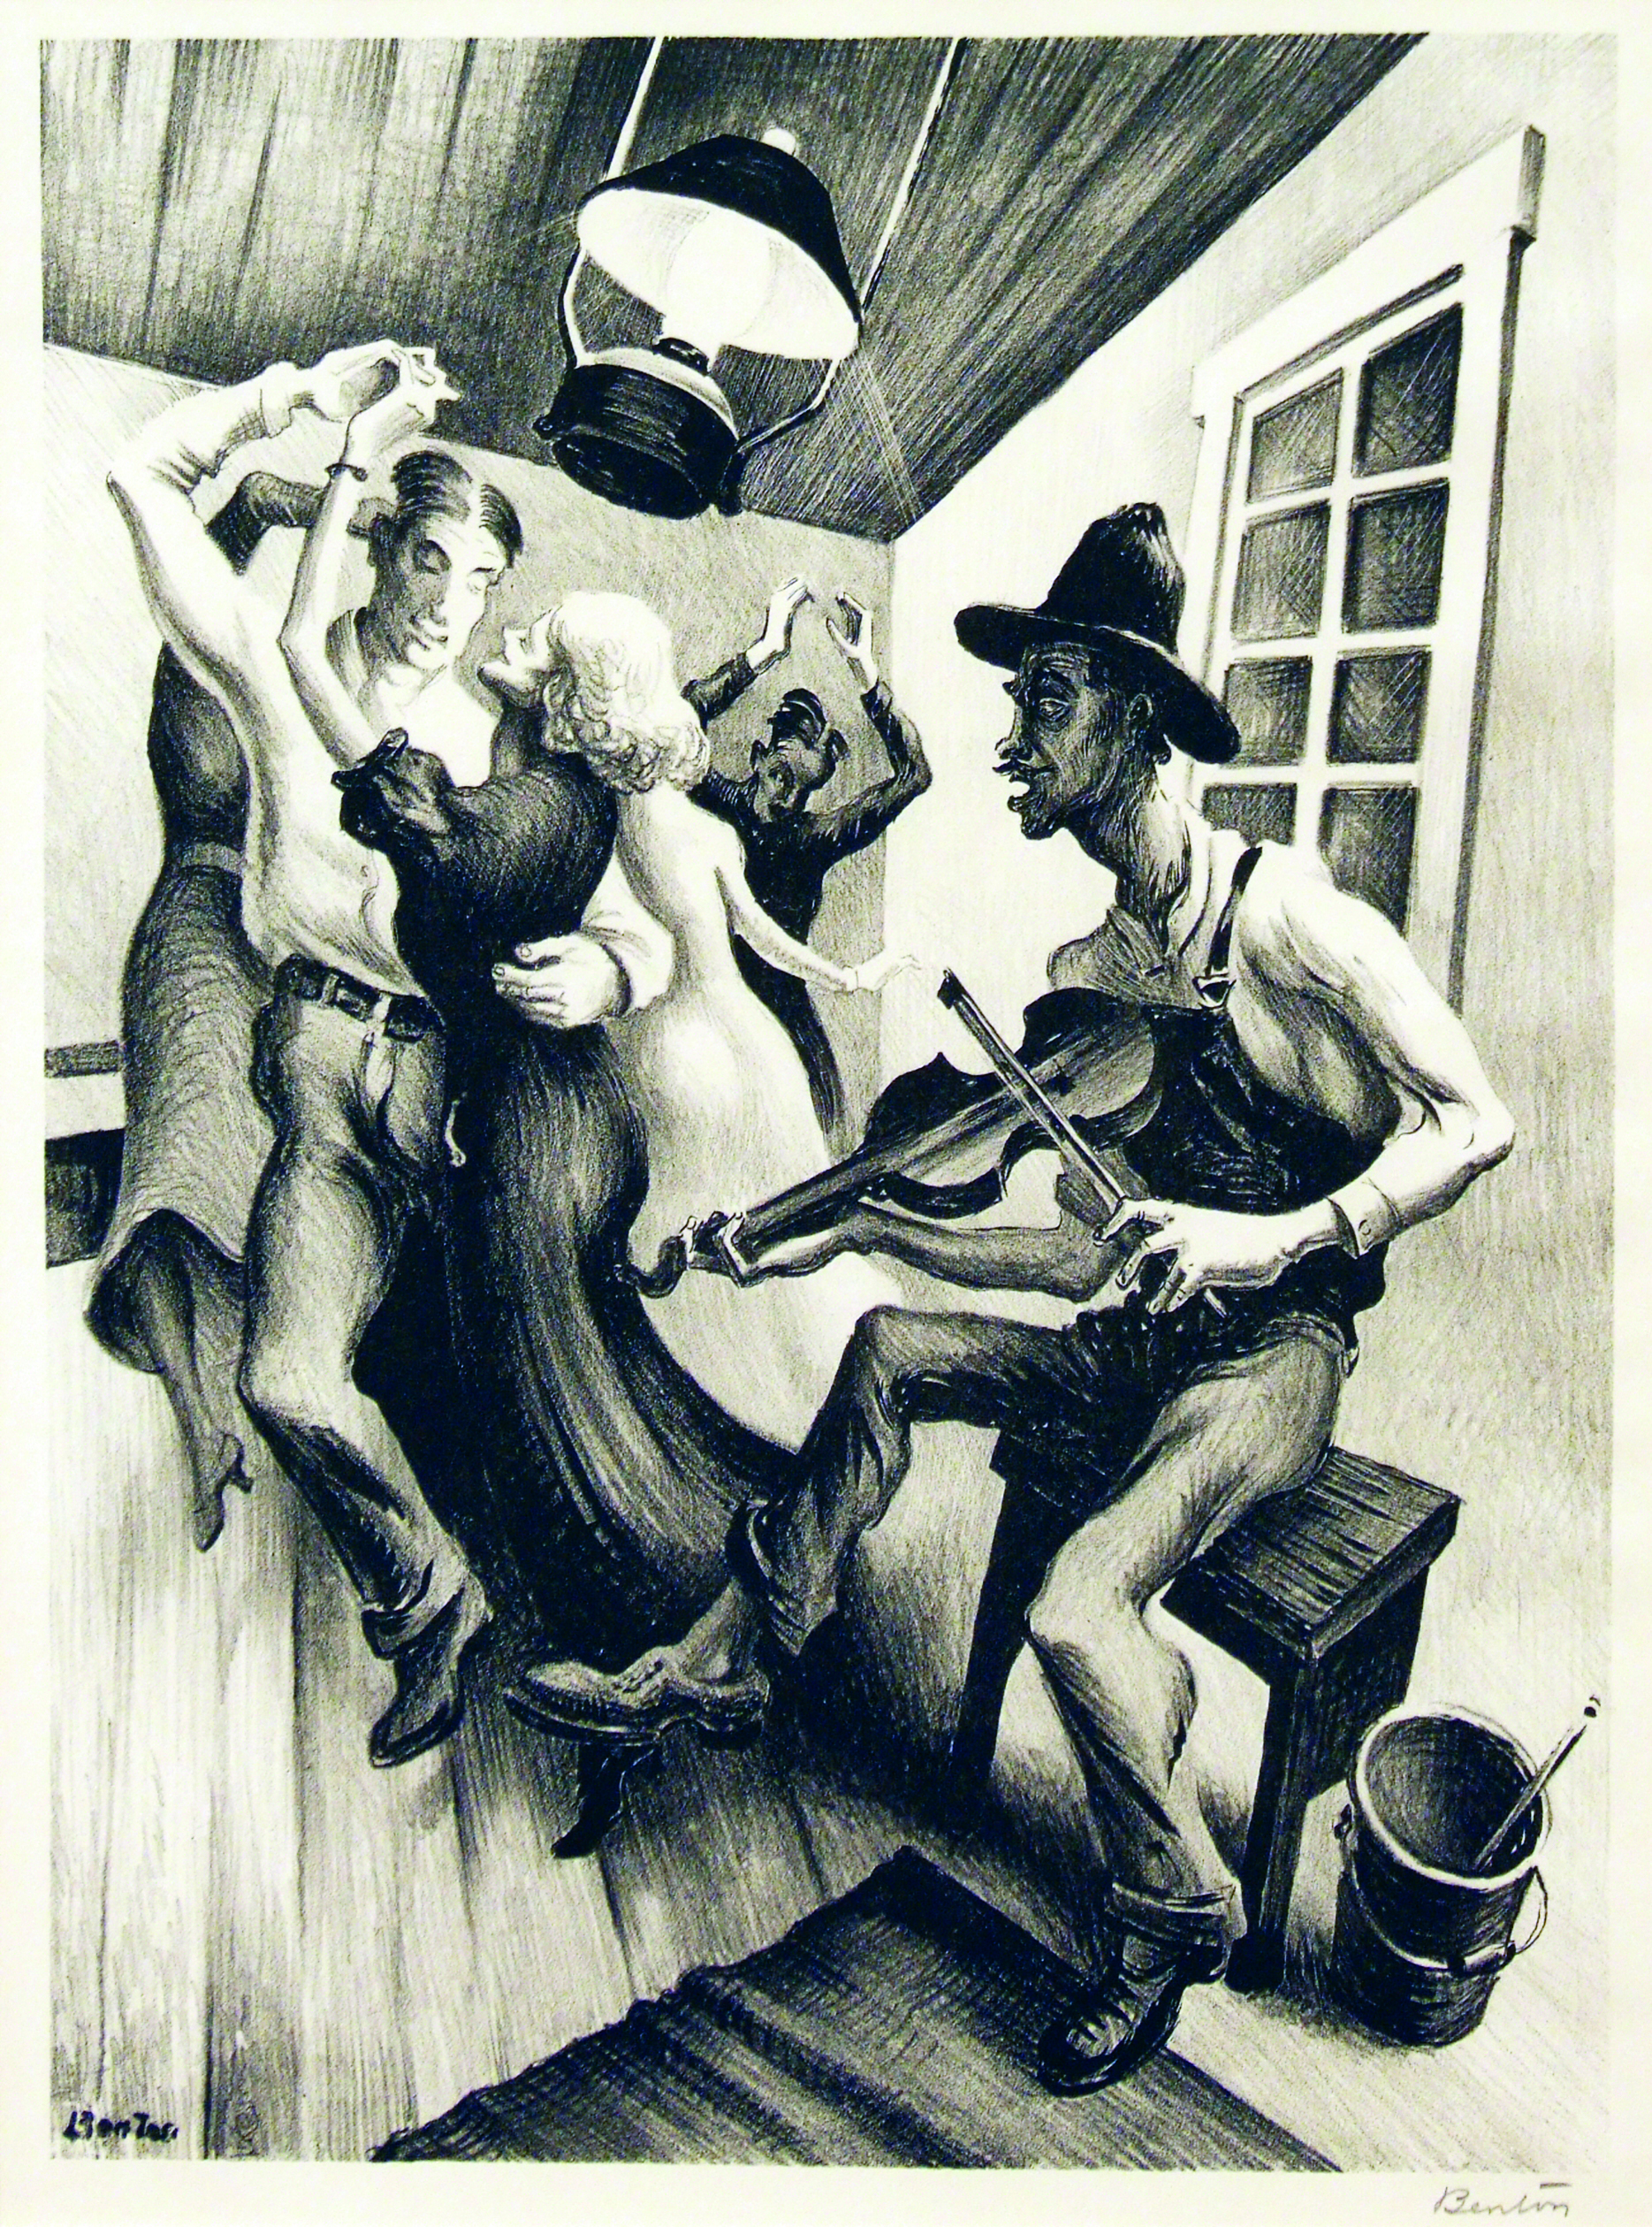 2005.005 | Thomas Hart Benton | I GOT A GIRL ON SOURWOOD MOUNTAIN | lithograph | 12-/12 x 9-1/8"